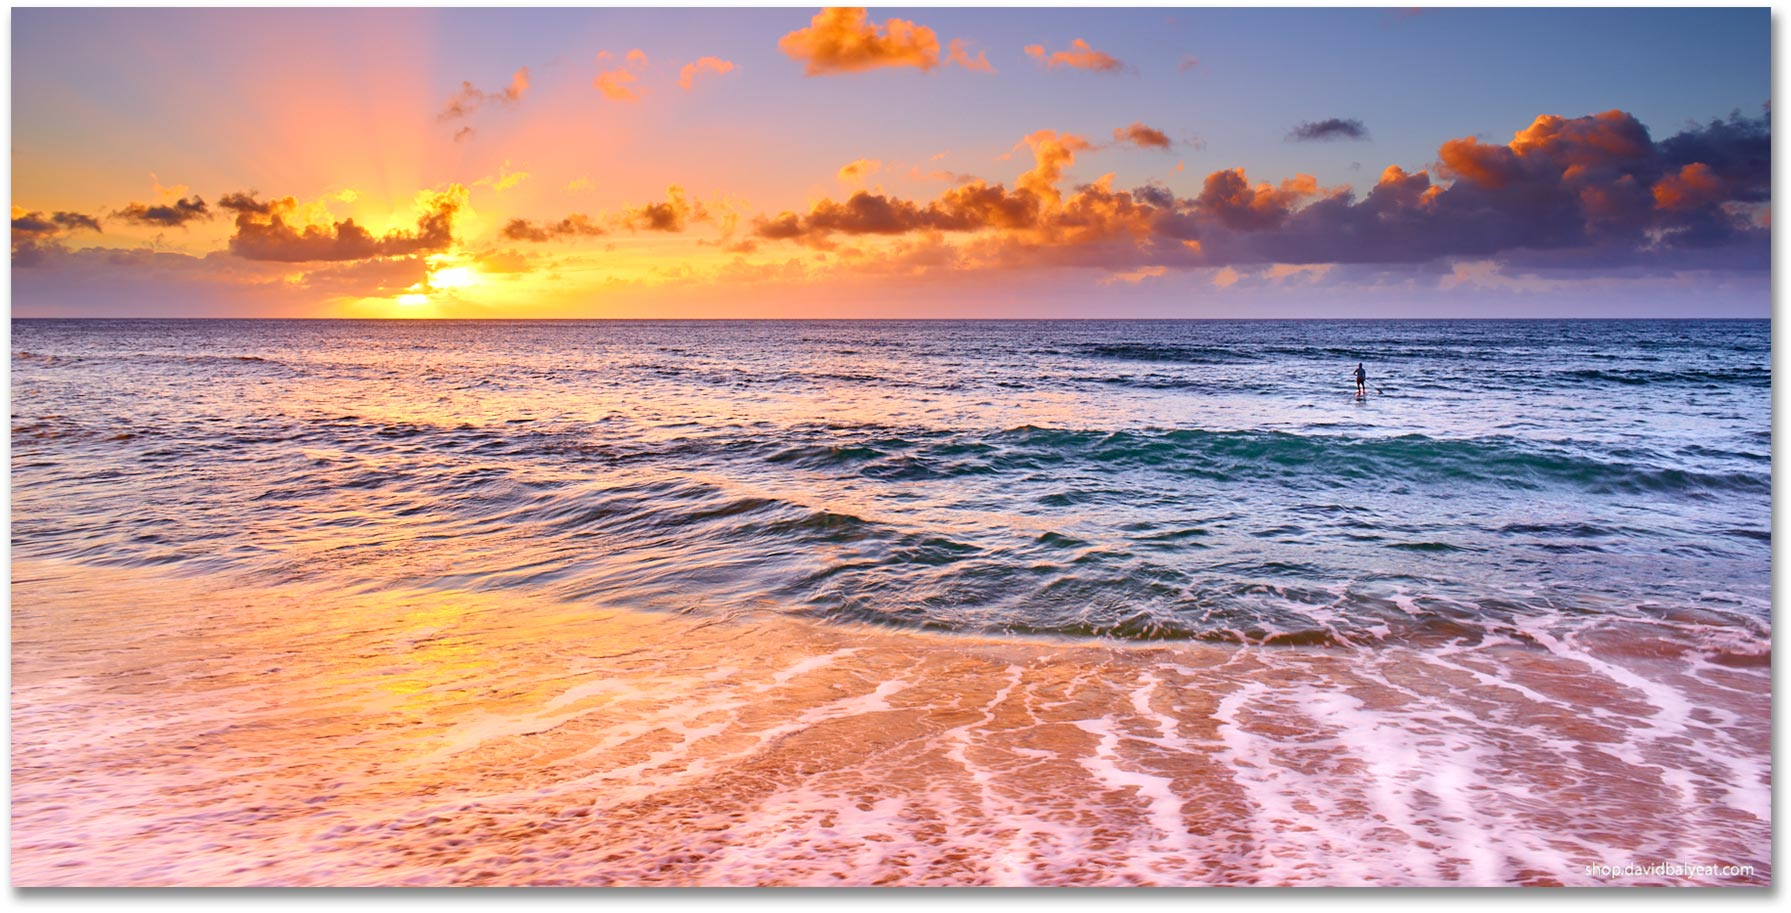 Sunset Beach Hawaii Oahu North S High Definition Hd Professional Landscape Photography